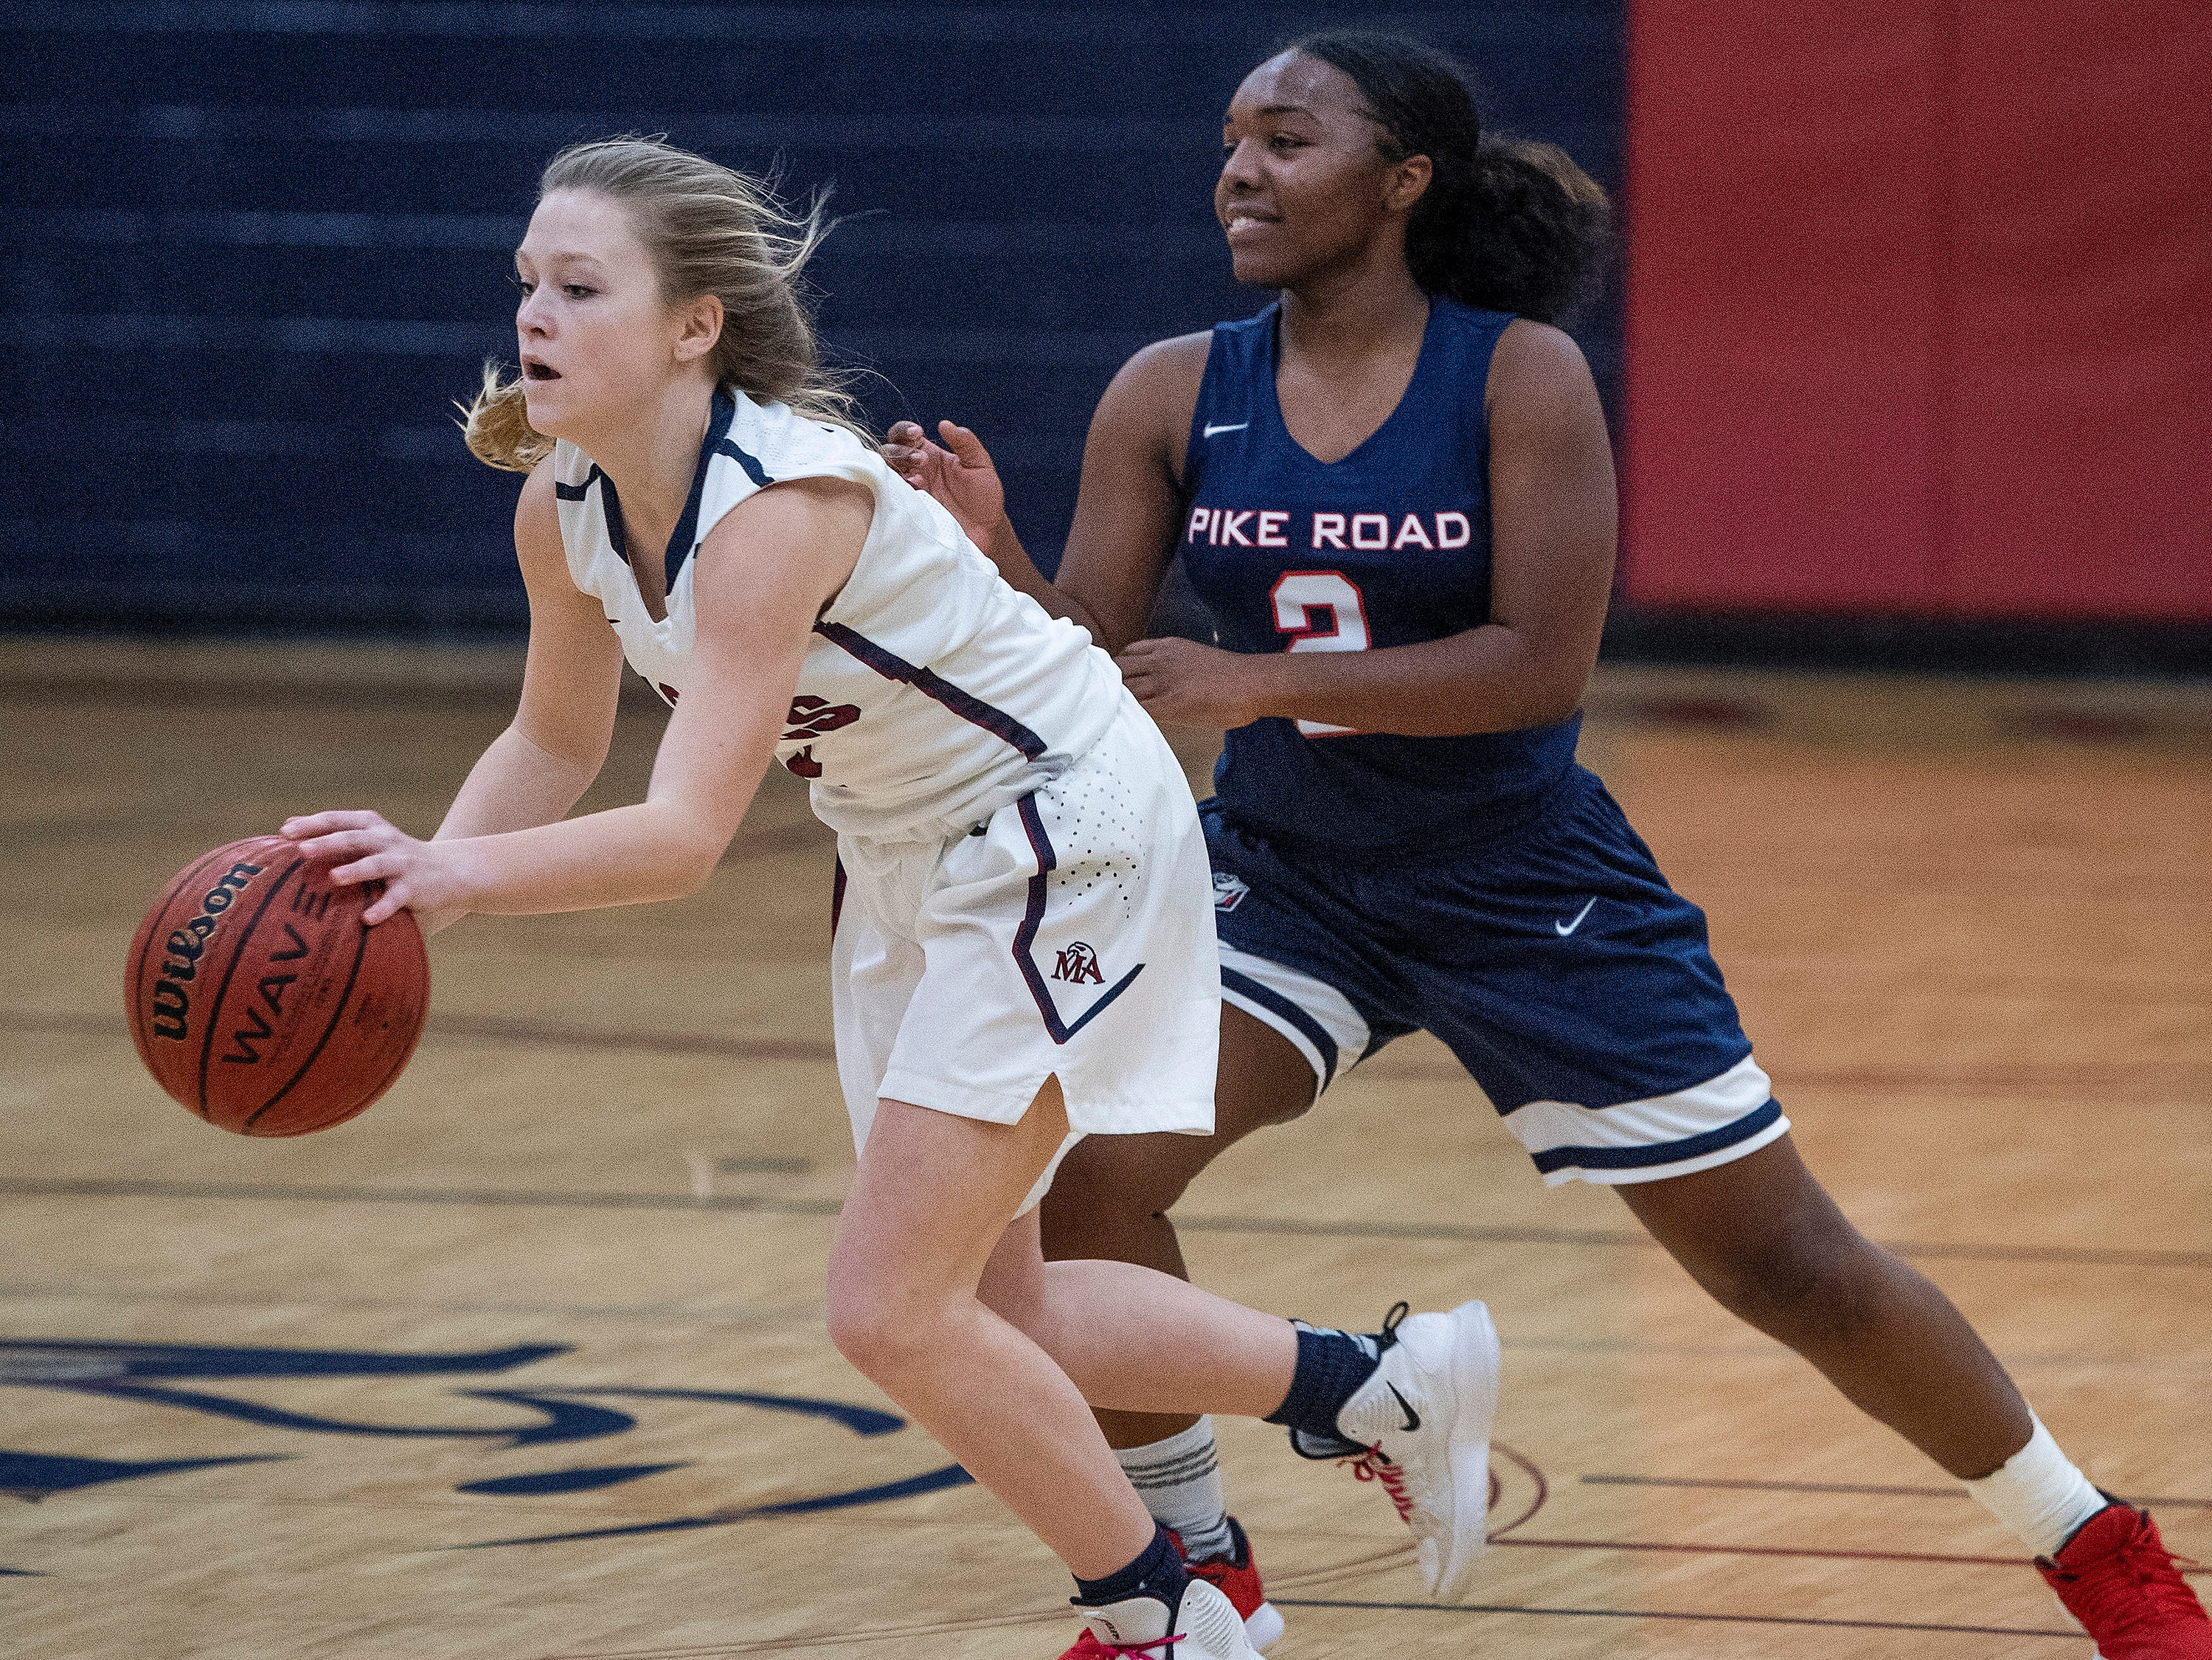 Montgomery Academy's Julia Williams (2) against Pike Road's Jakhiah Lewis (2) on the MA campus in Montgomery, Ala., on Friday February 8, 2019.